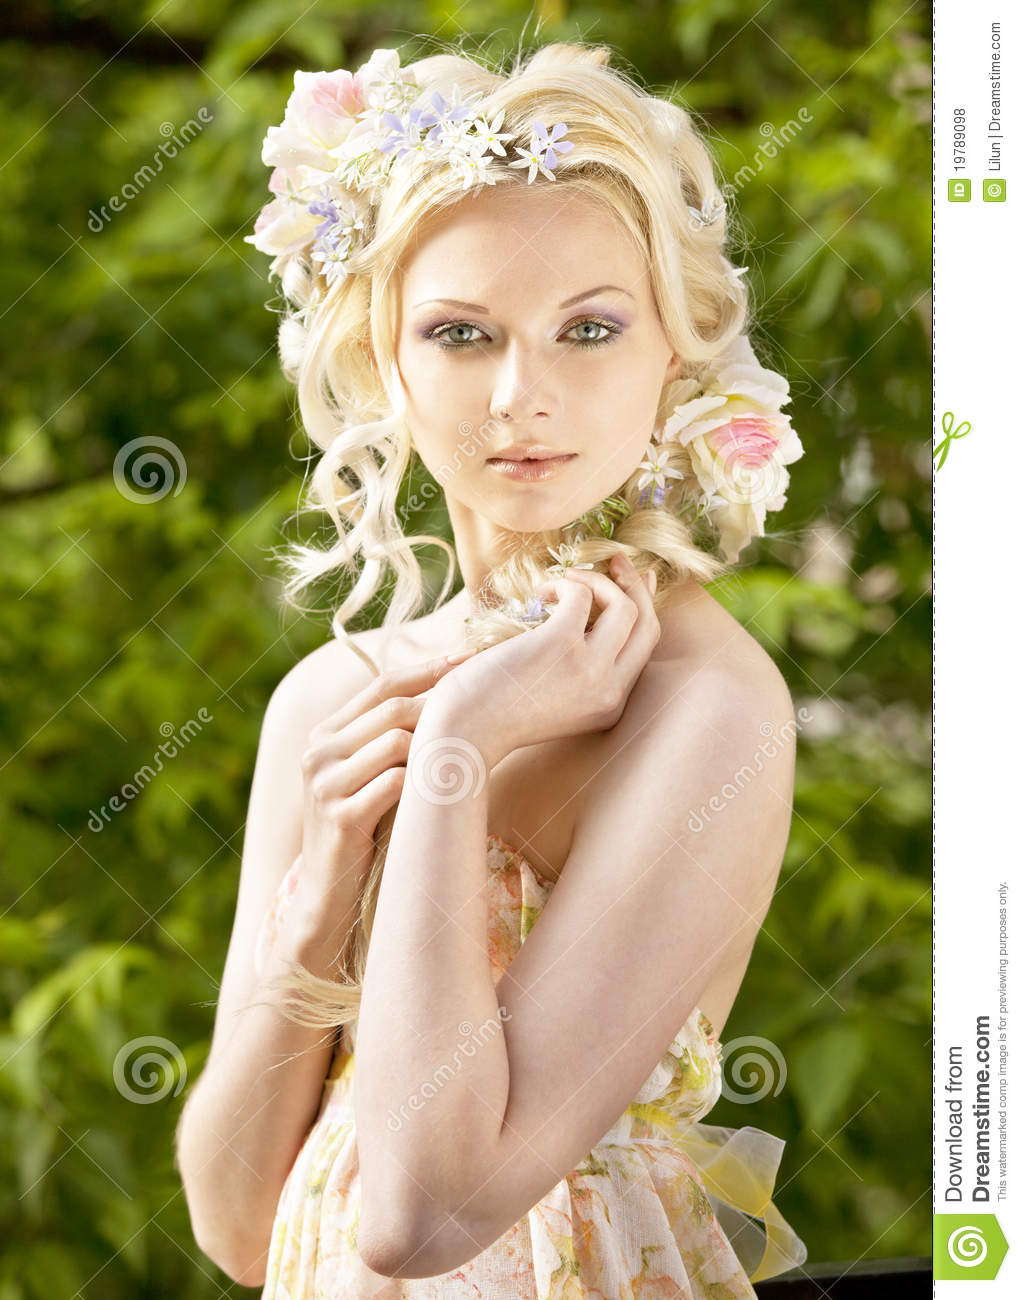 flower in her hair - photo #48